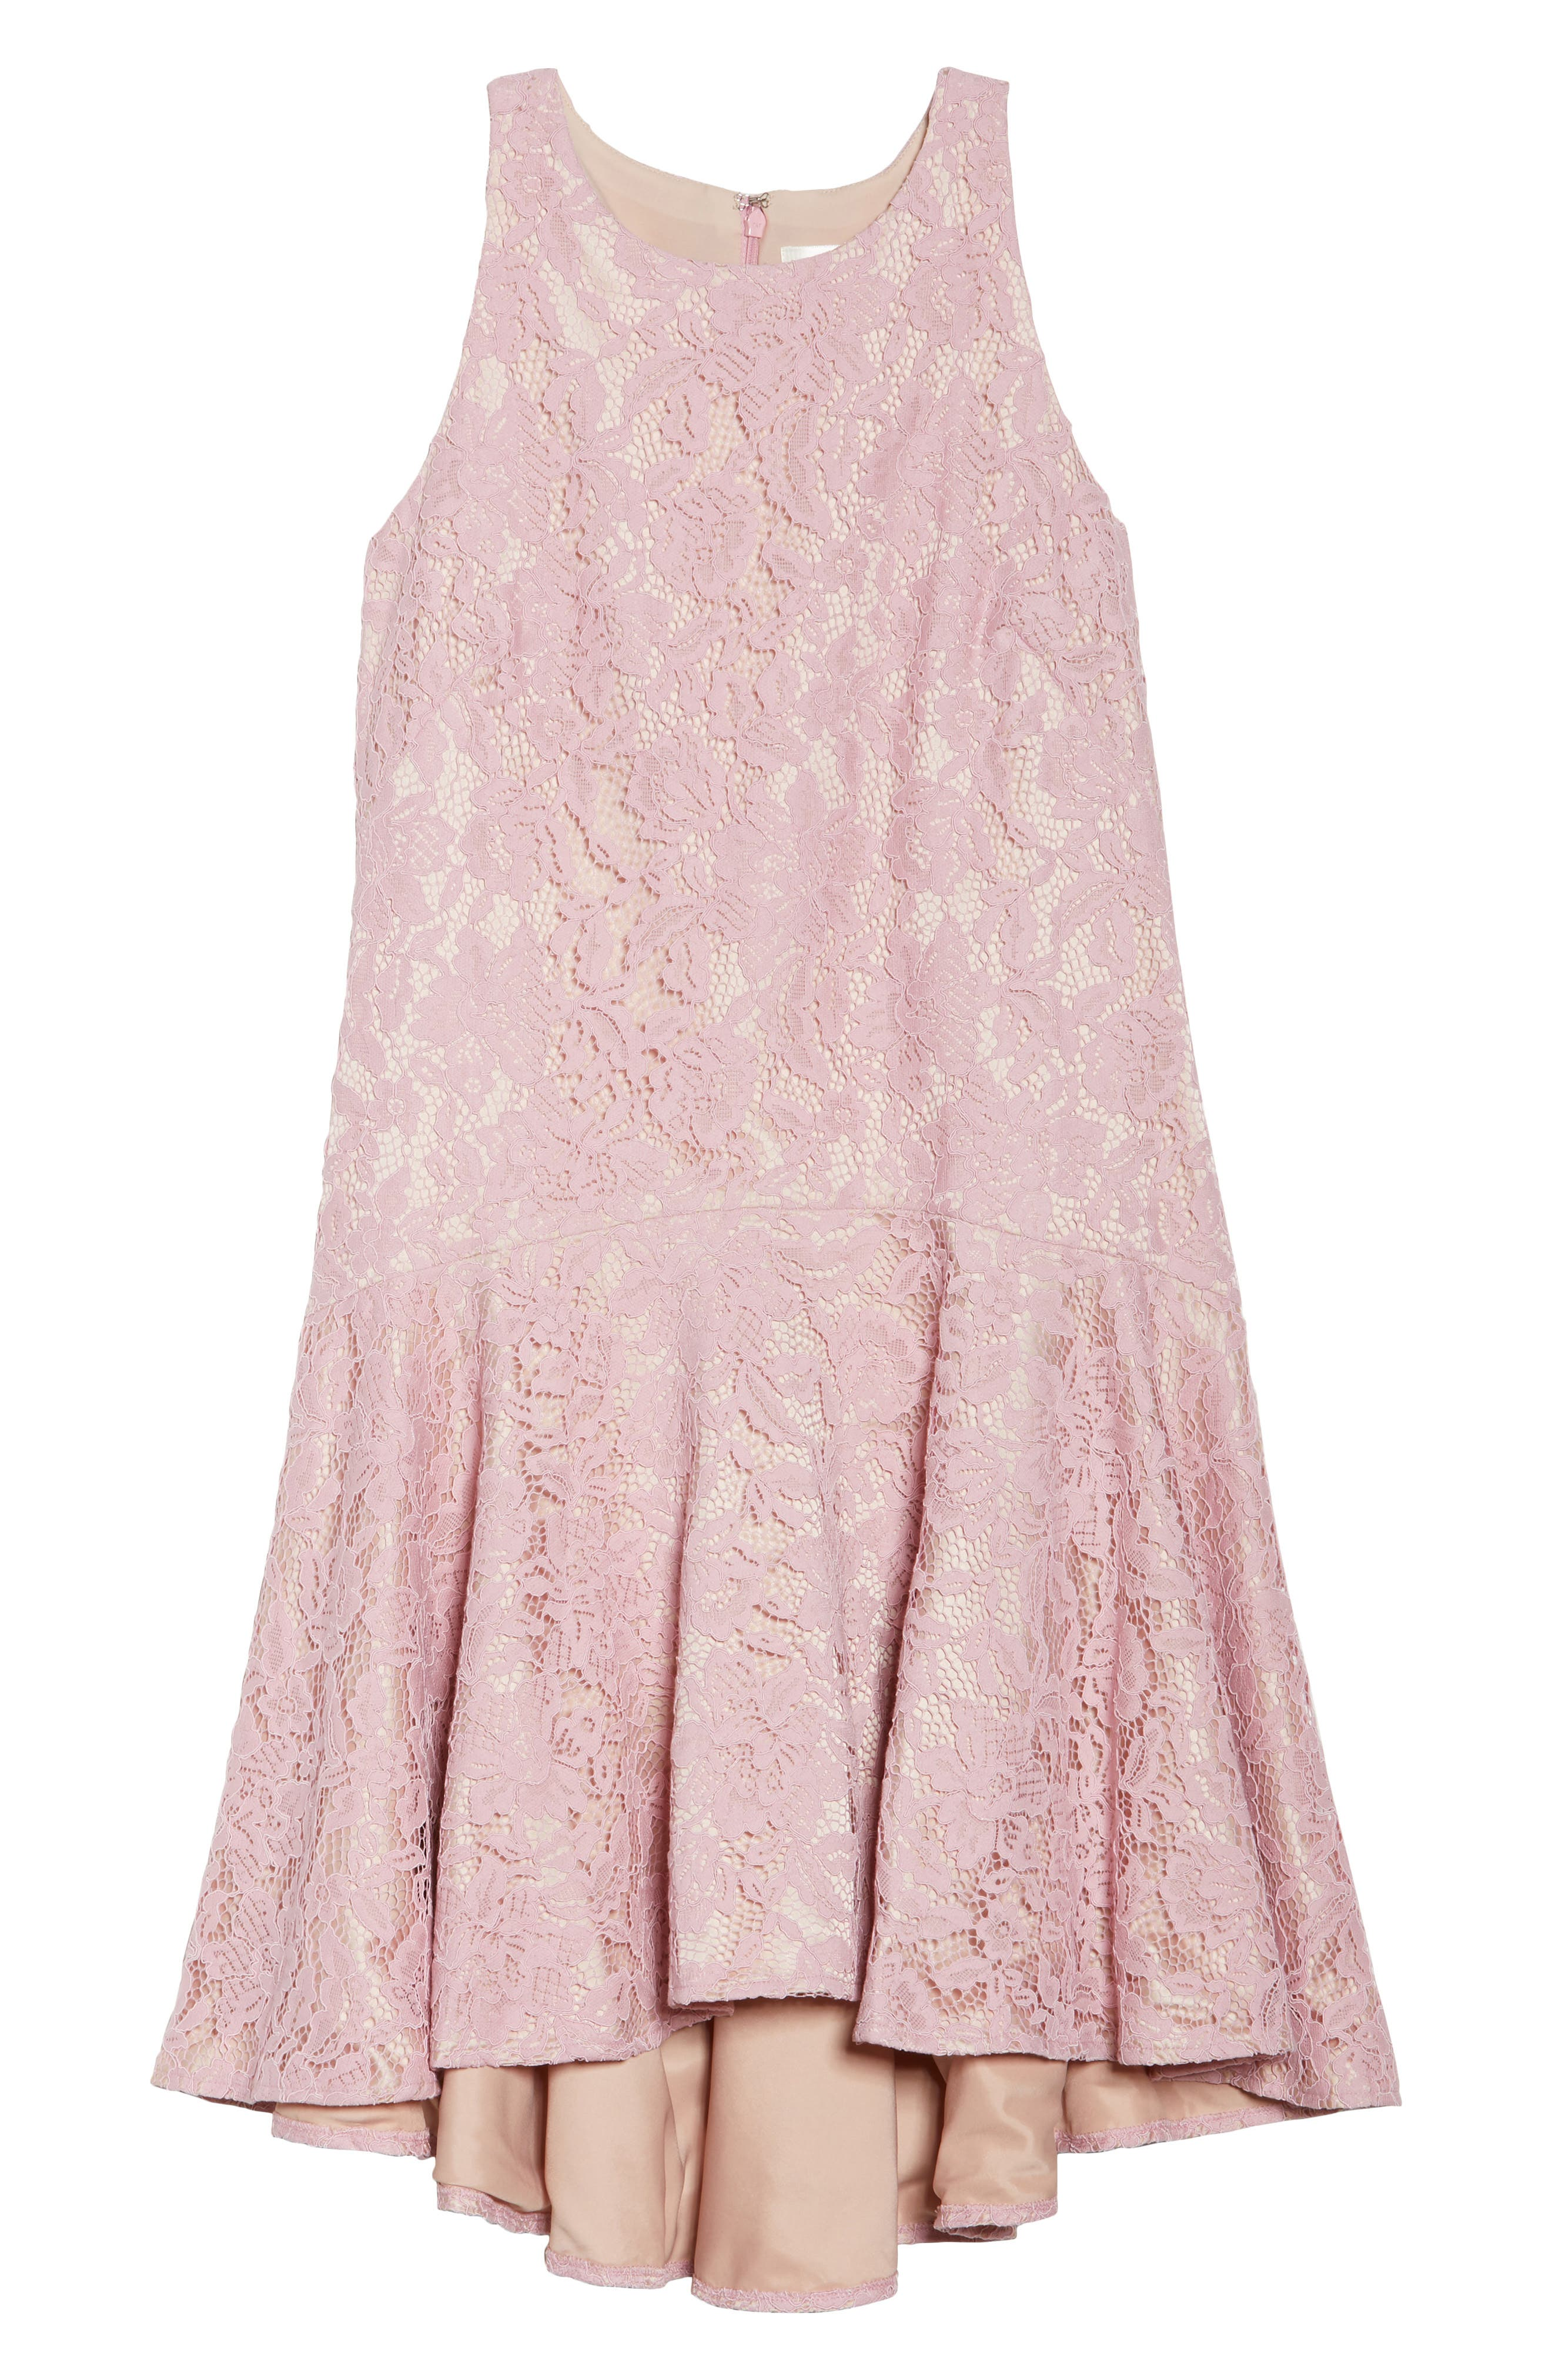 Sleeveless Drop Waist Lace Dress,                             Alternate thumbnail 7, color,                             Blush